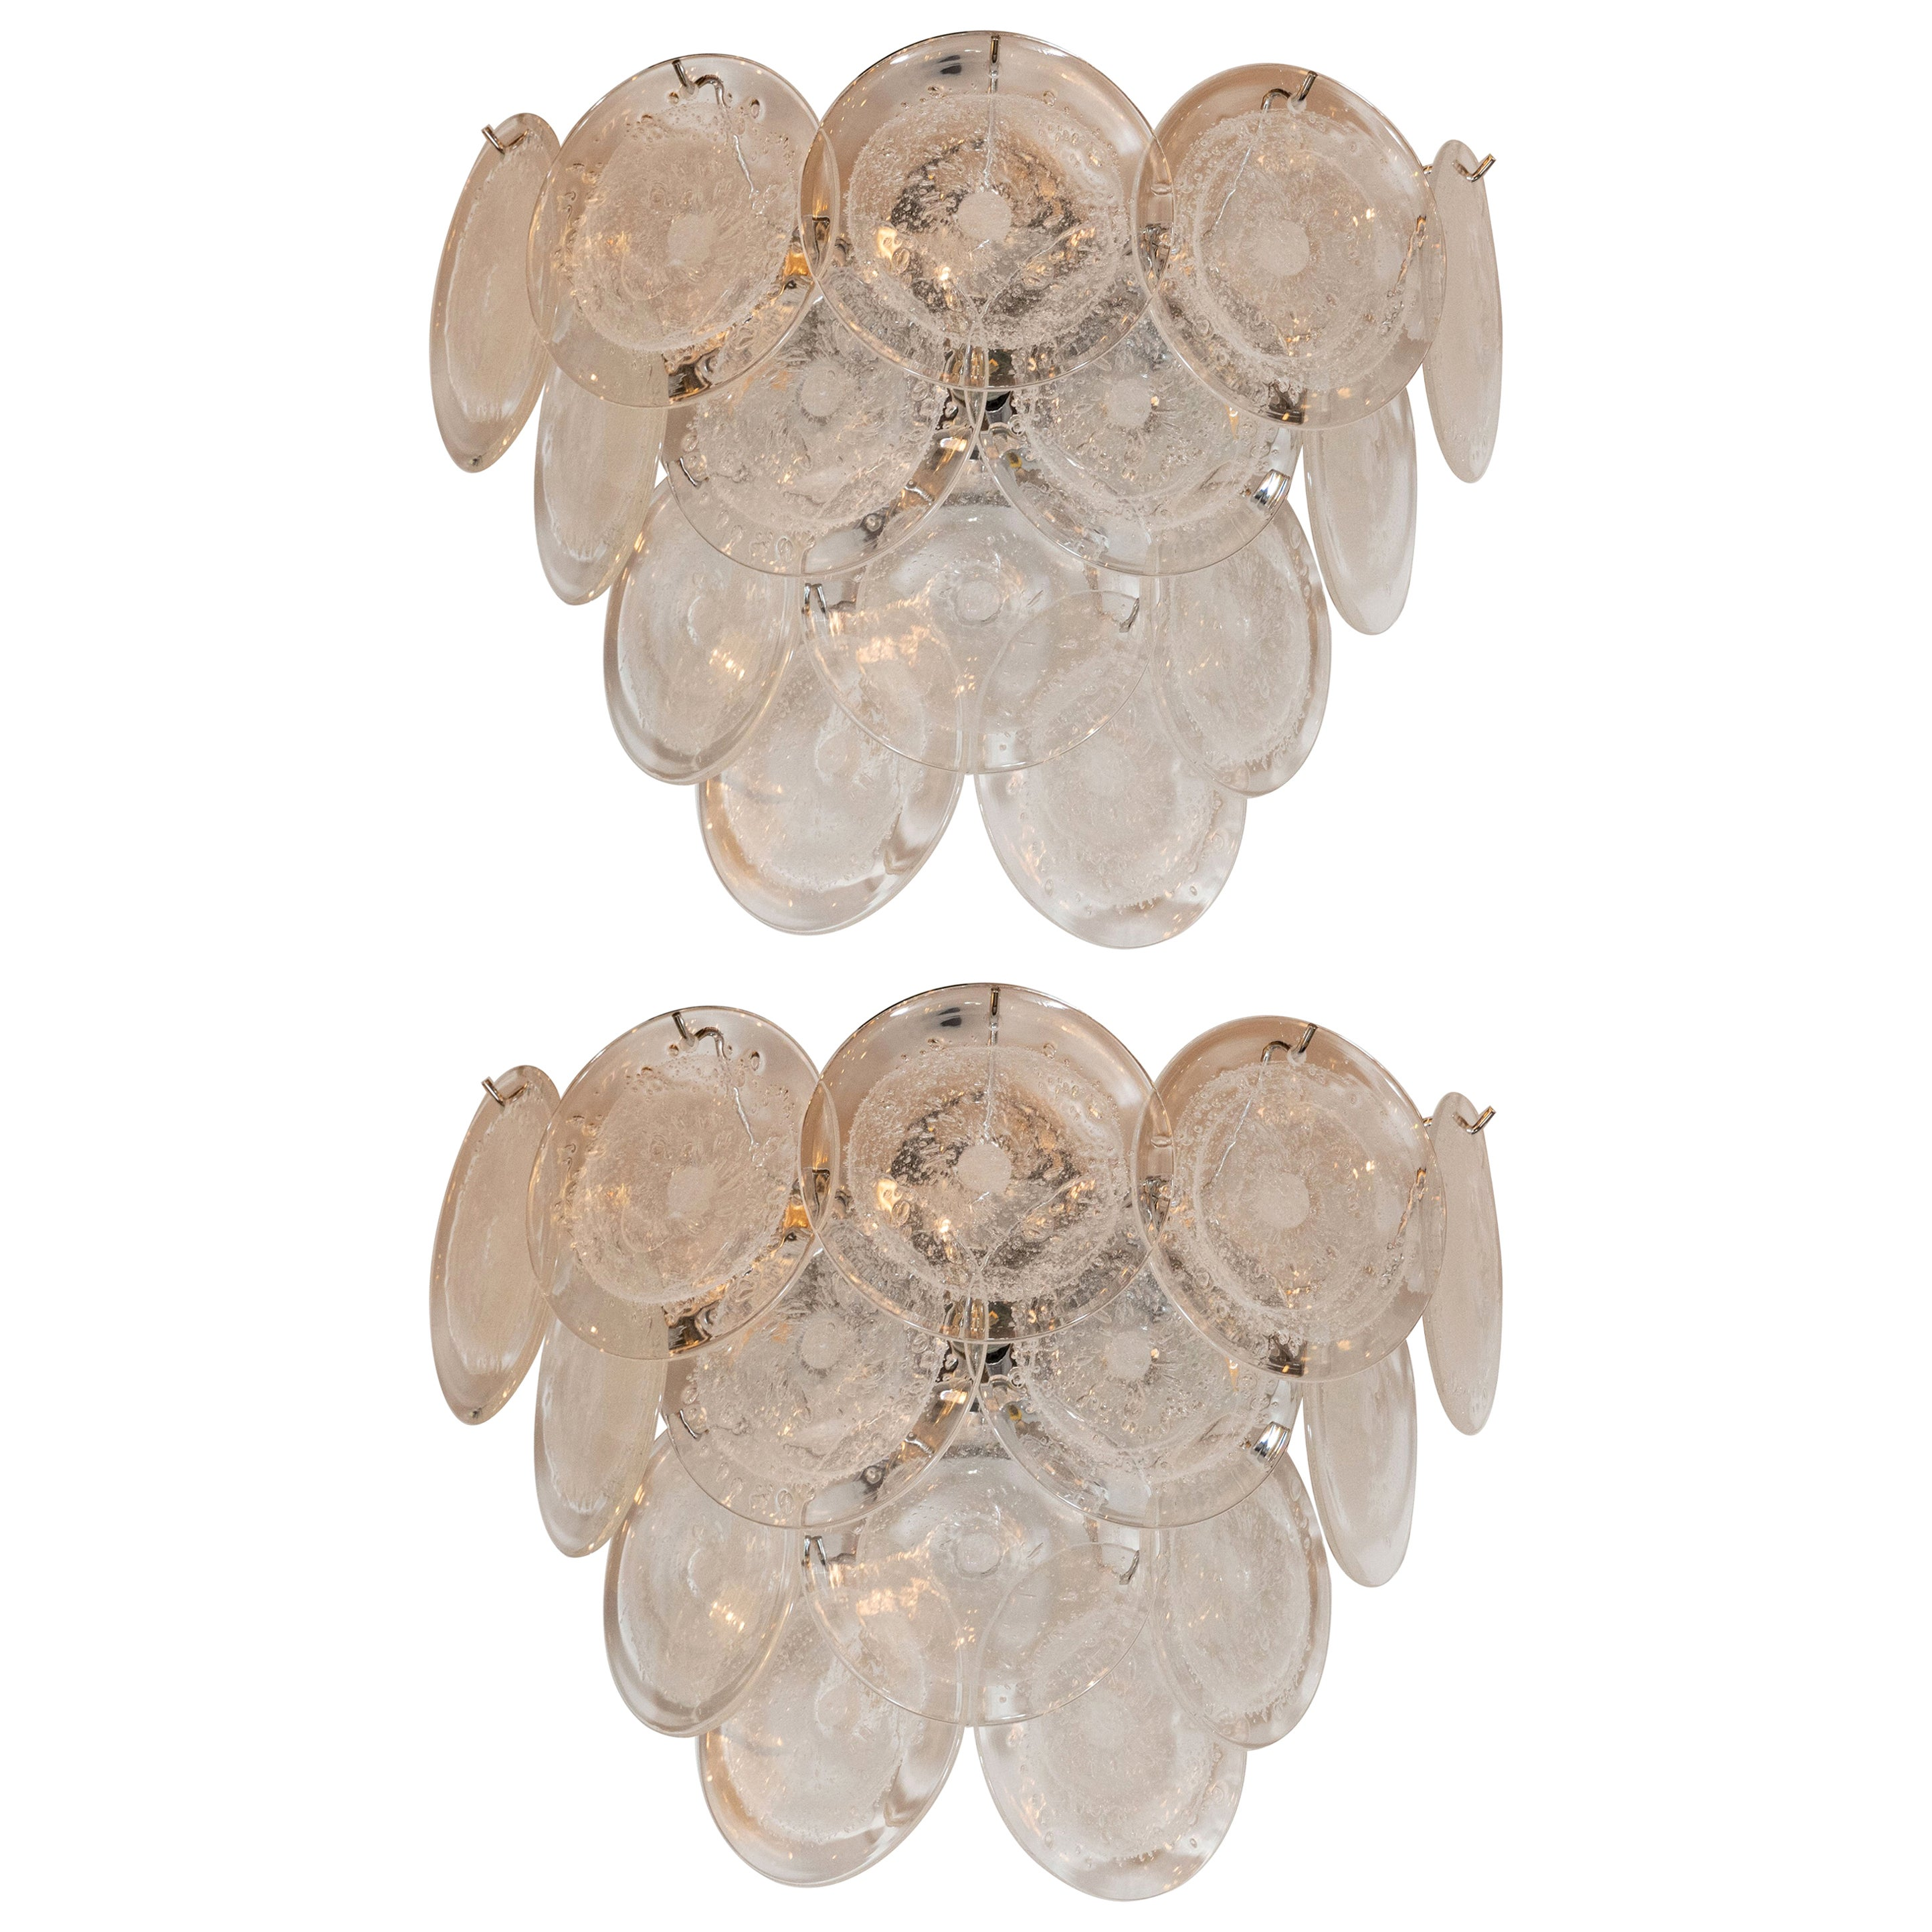 Pair of Modernist 14-Disc Sconces in Handblown Murano Clear Glass